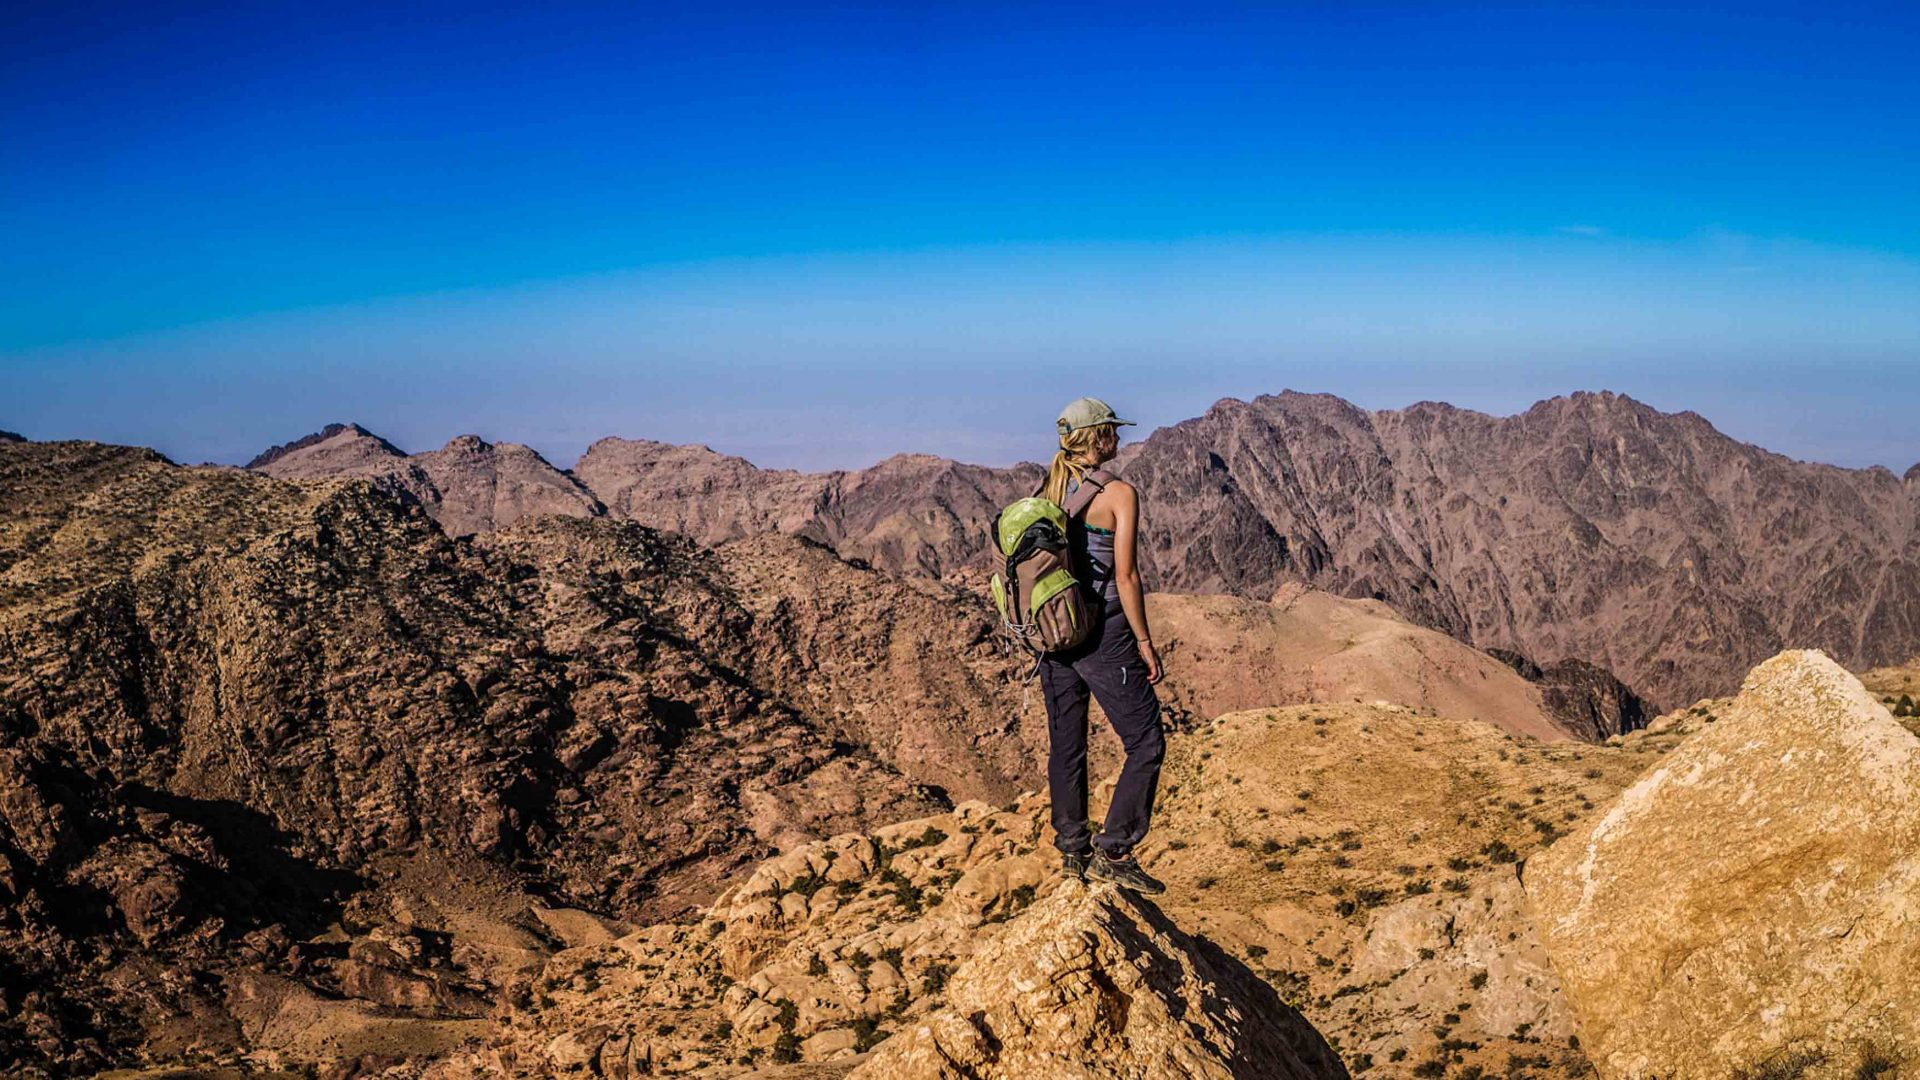 The Middle East just got its very own Inca Trail